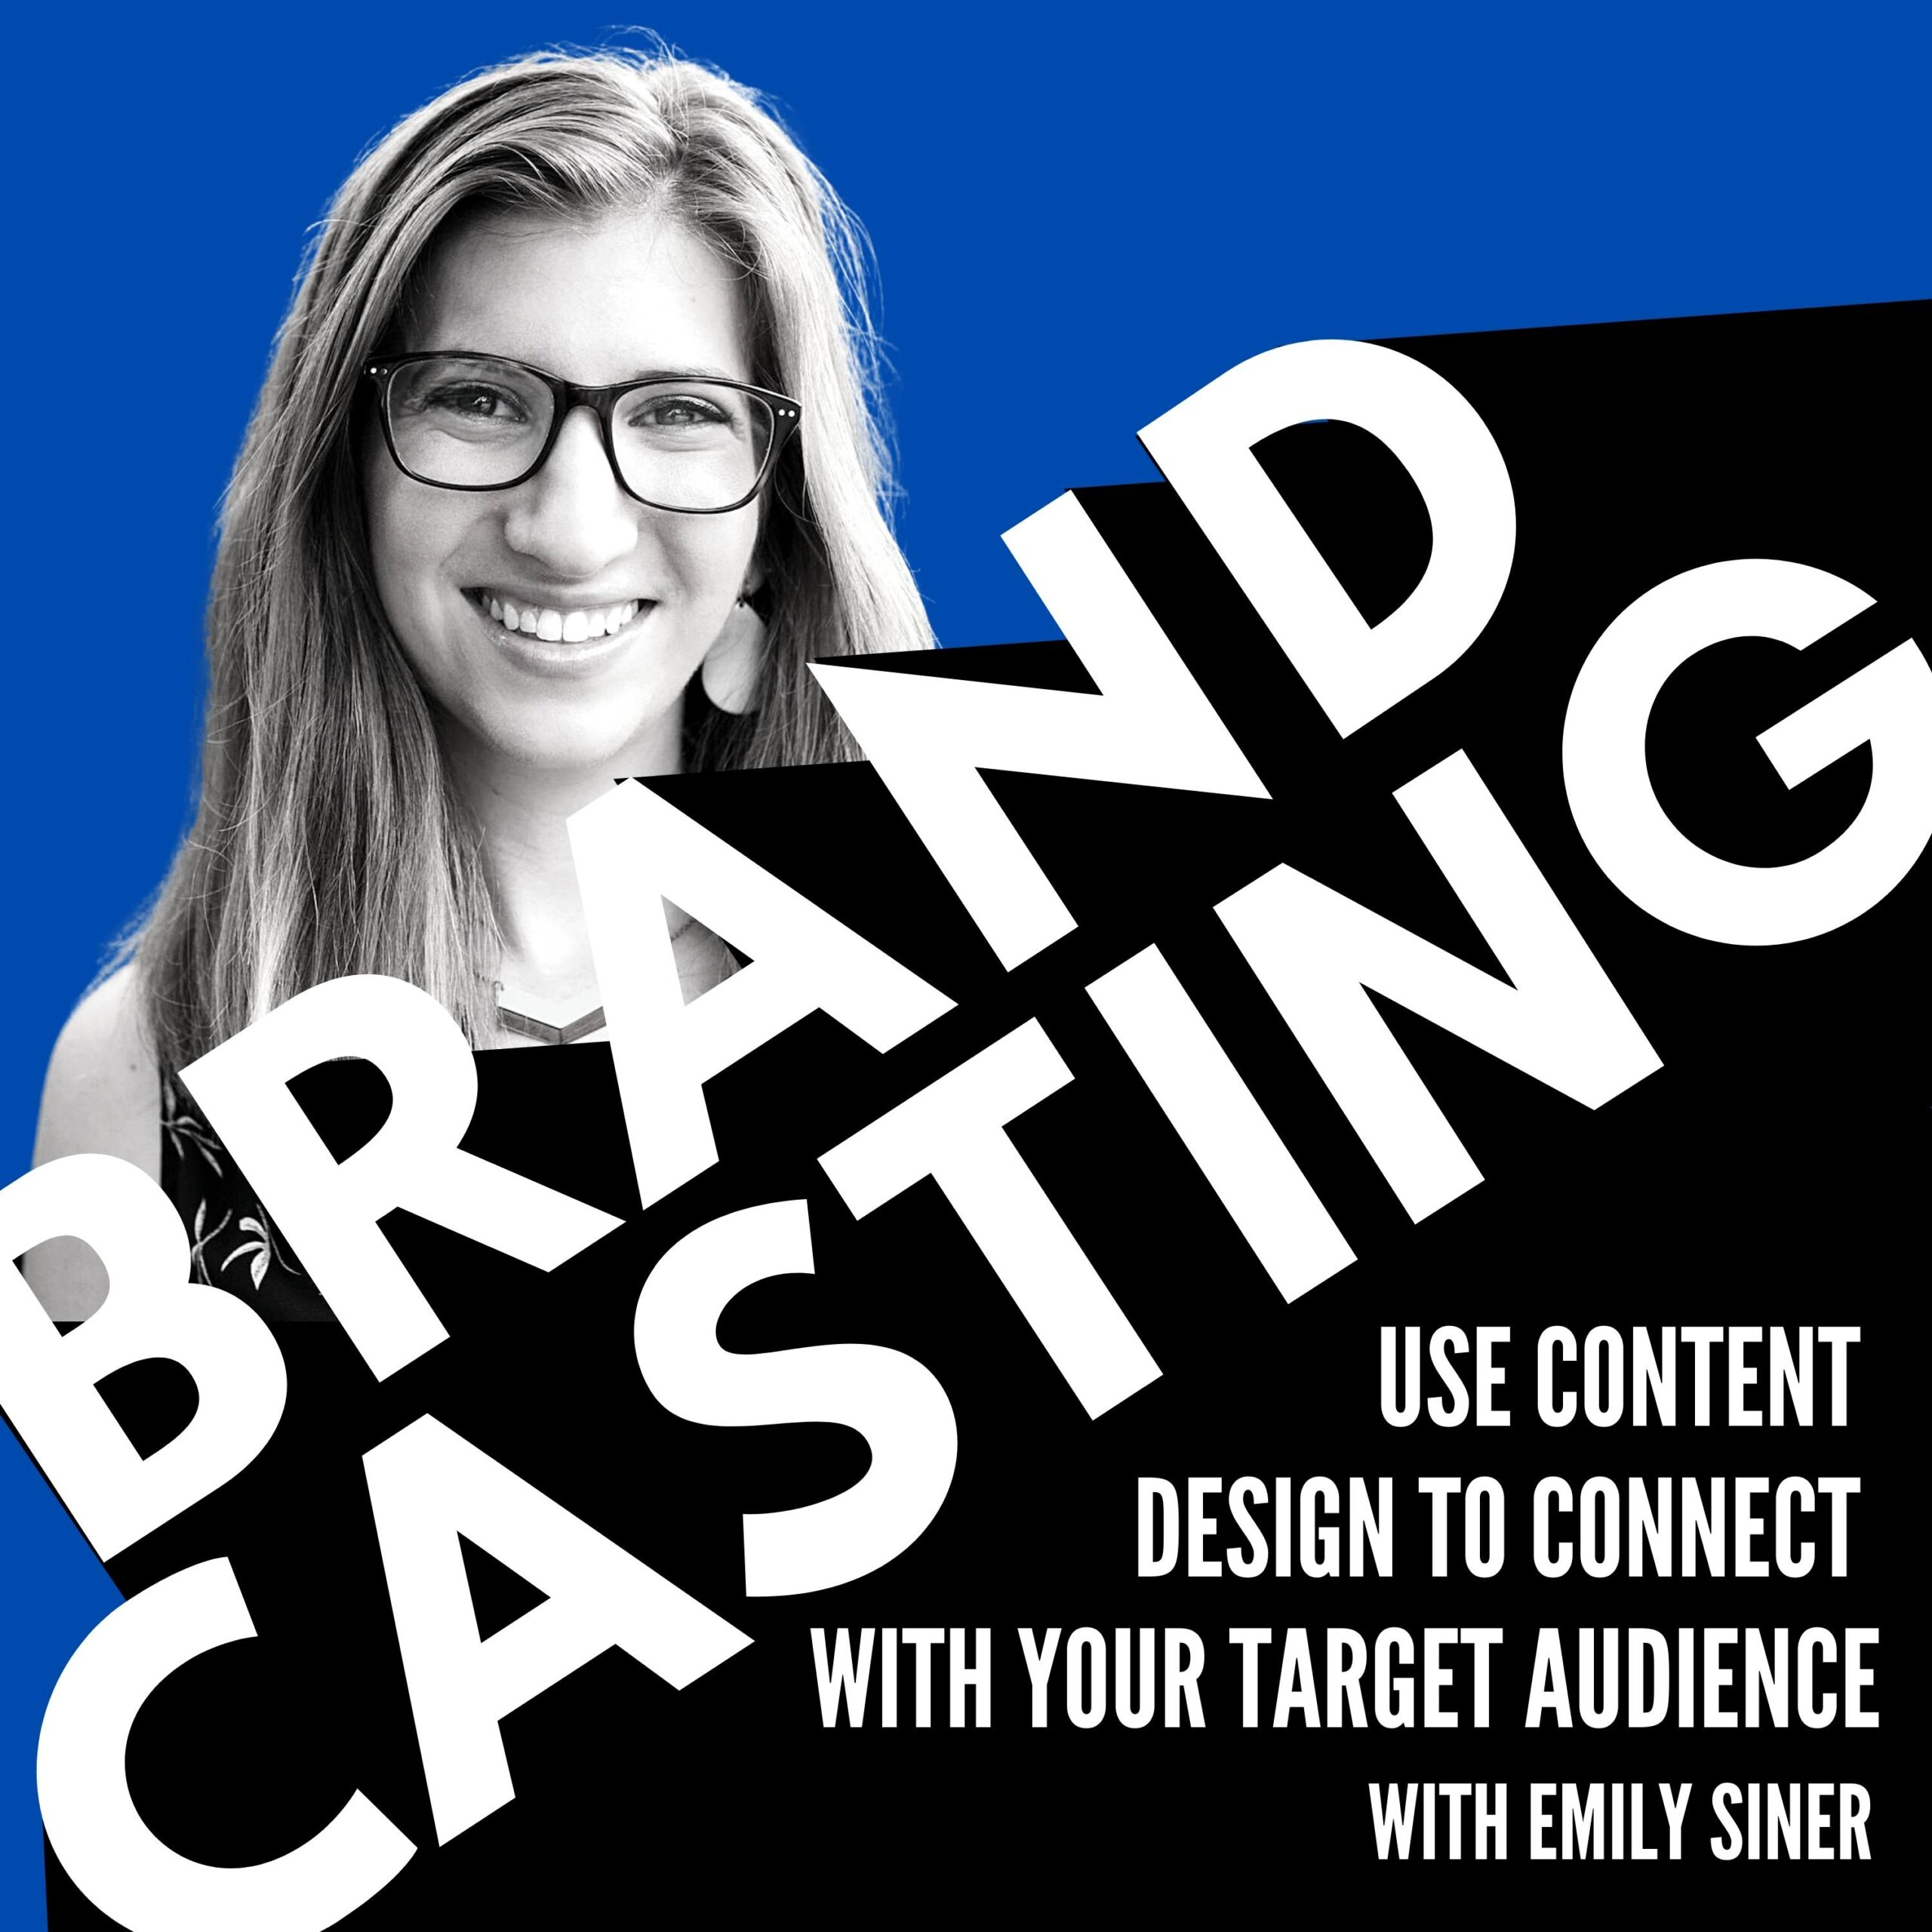 Brandcasting – Use Content Design to Connect with Your Target Audience with Emily Siner